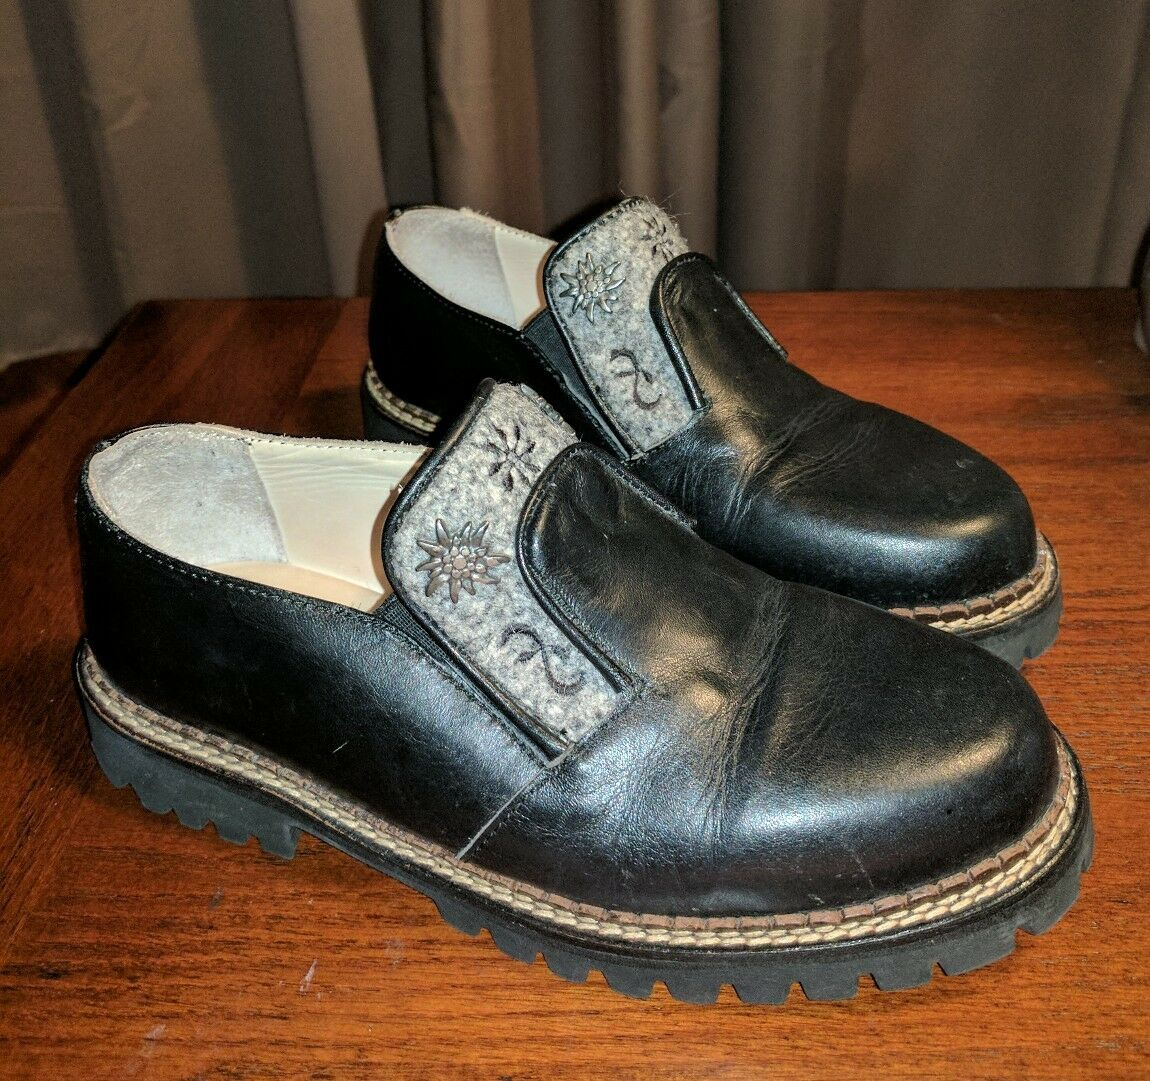 RARE GEIER WALLY AUSTRALIA AUSTRALIA AUSTRALIA noir LEATHER ANKLE bottes chaussures 37 US 6.5 7 GOTH PUNK 9940fd